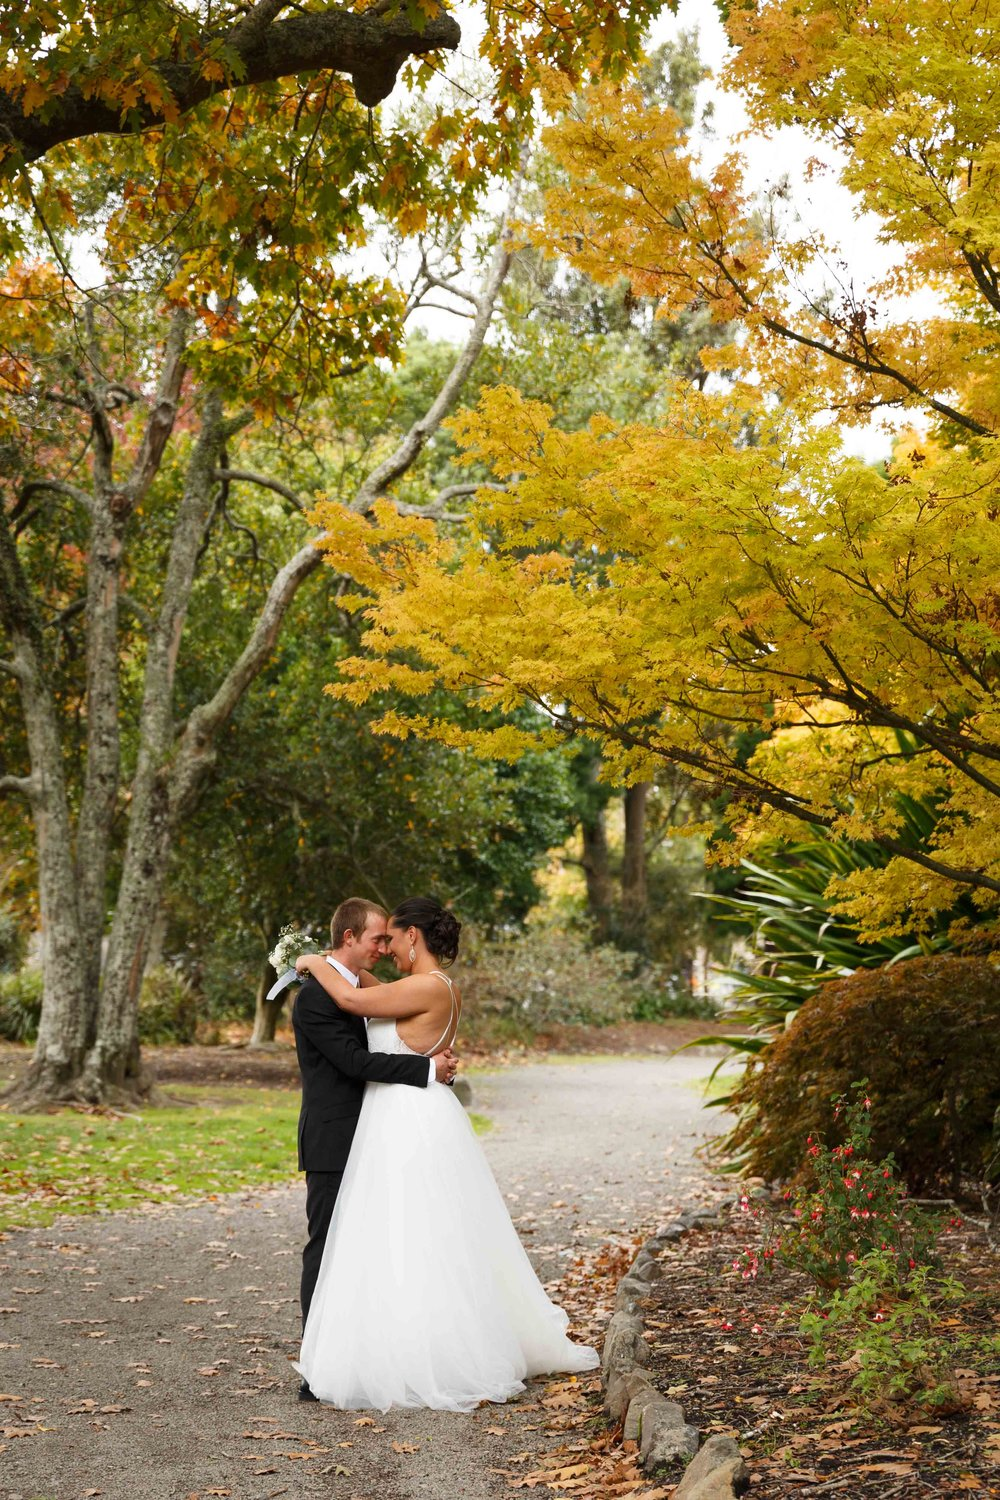 Highight-wedding-photography-the-chalet-palmerston-north-new-zealand-81.jpg